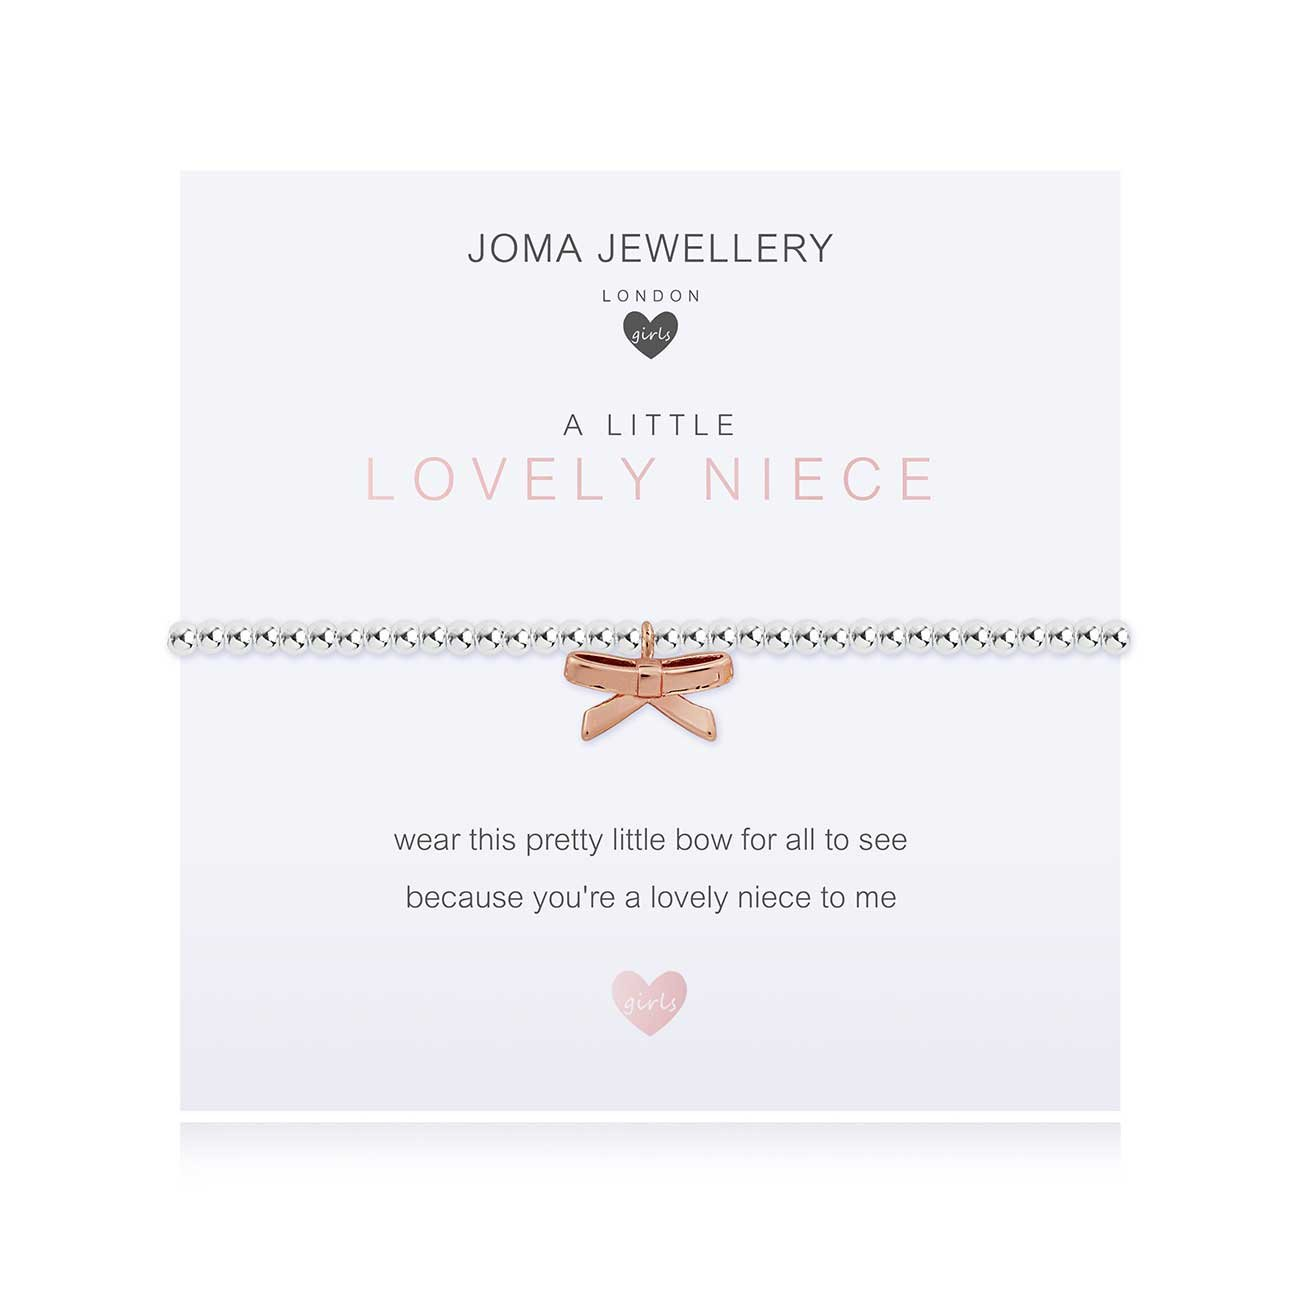 Joma Jewellery Children's a little Lovely Niece Bracelet | More Than Just A Gift | Authorised Joma Jewellery Stockist| More Than Just A Gift